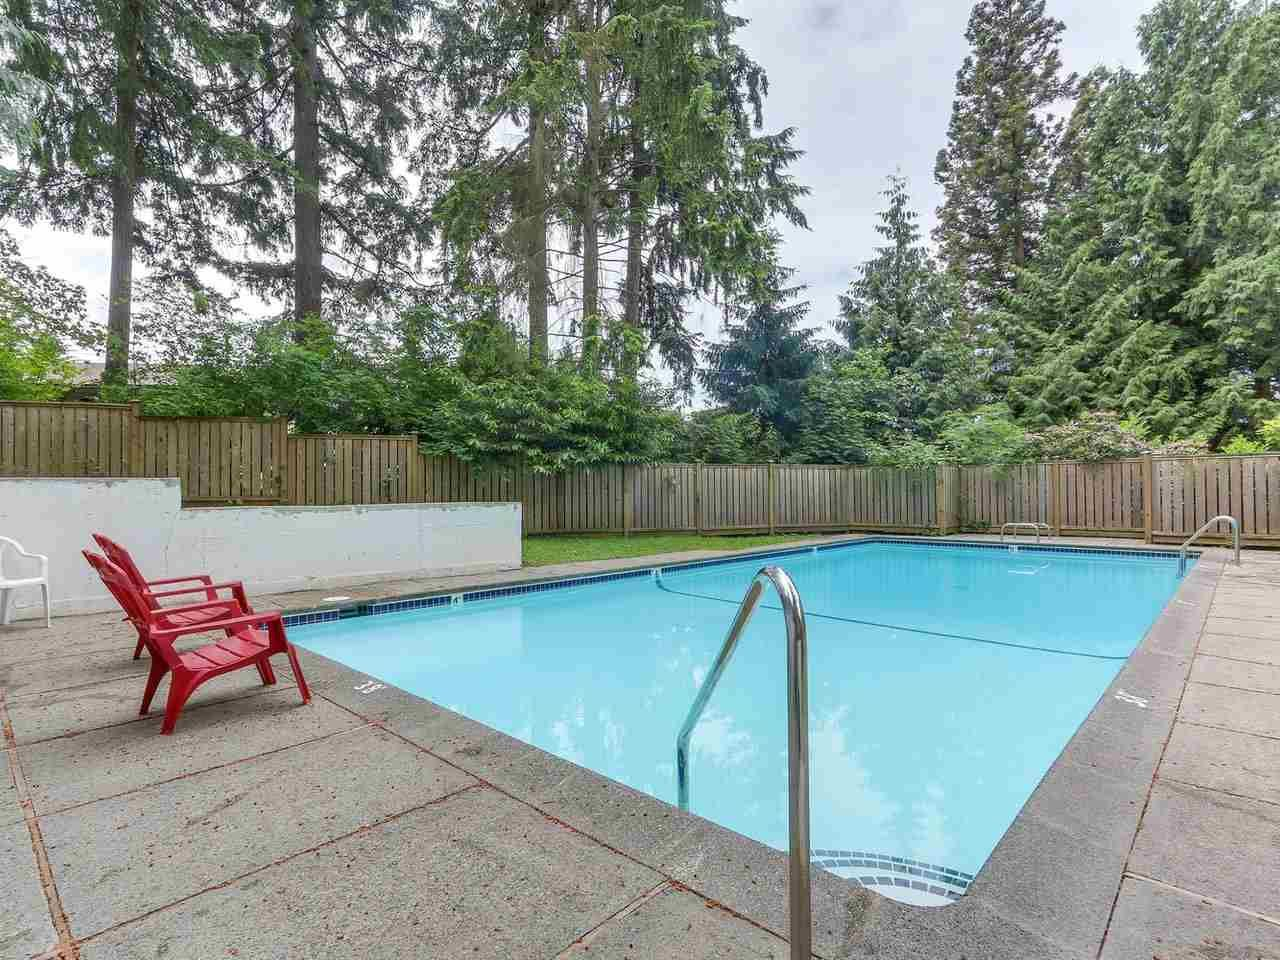 """Photo 12: Photos: 15 1811 PURCELL Way in North Vancouver: Lynnmour Condo for sale in """"LYNNMOUR SOUTH"""" : MLS®# R2276321"""